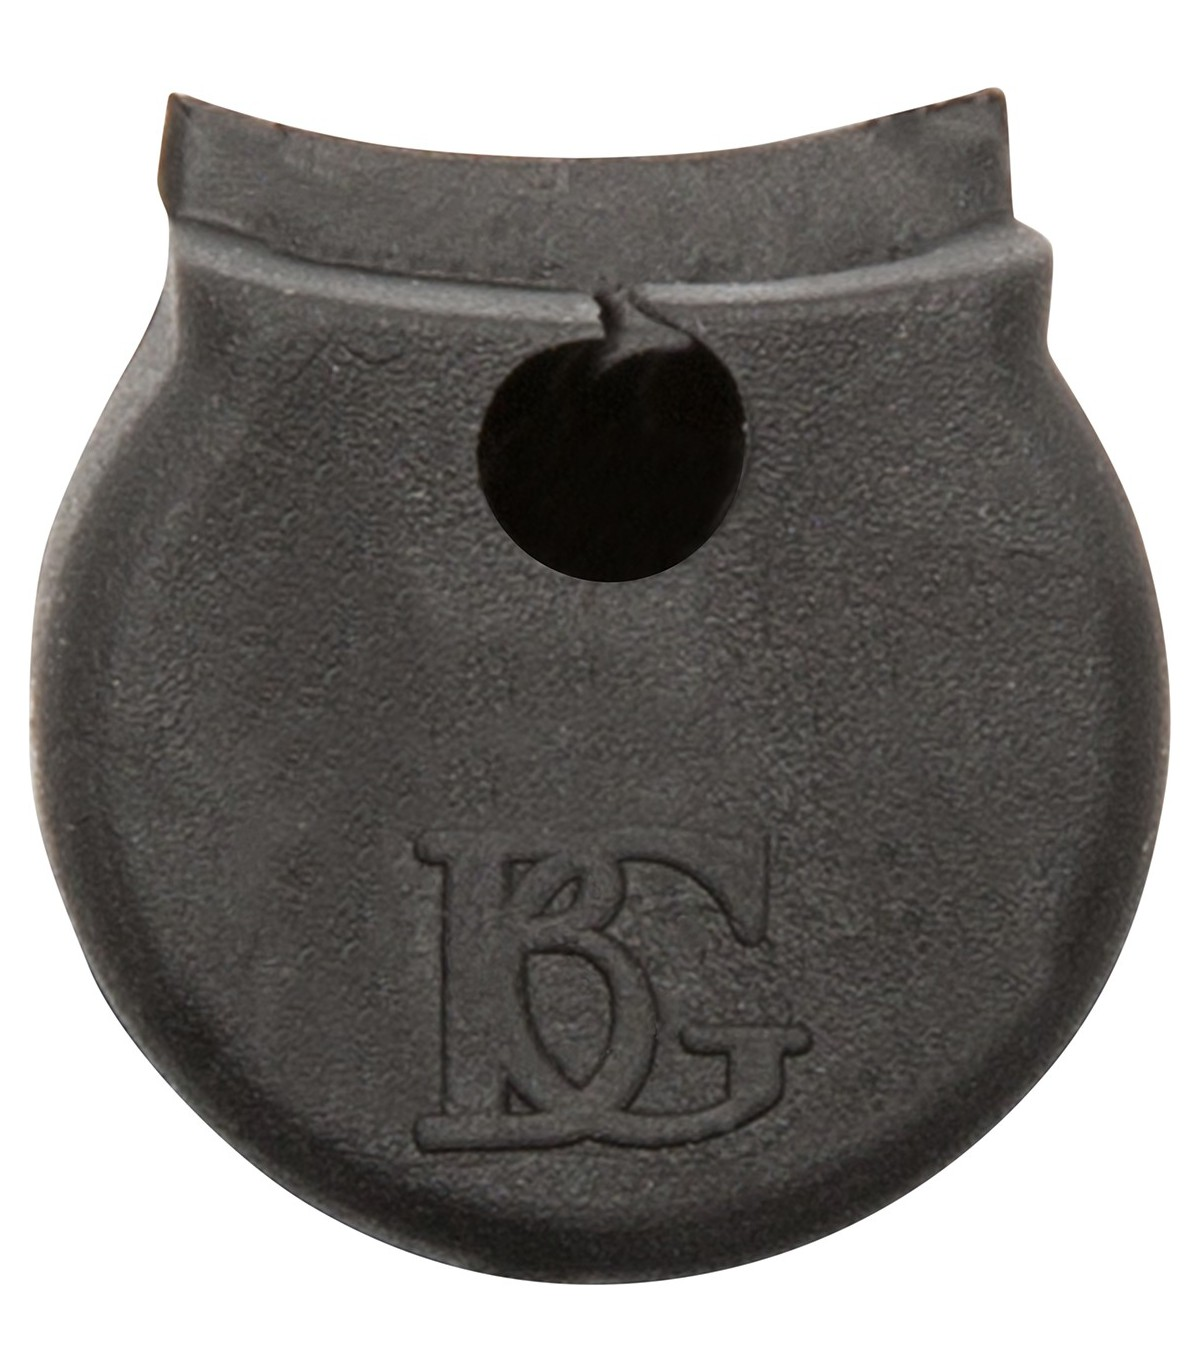 BG: Standard Clarinet or Oboe Thumb Rest Cushion